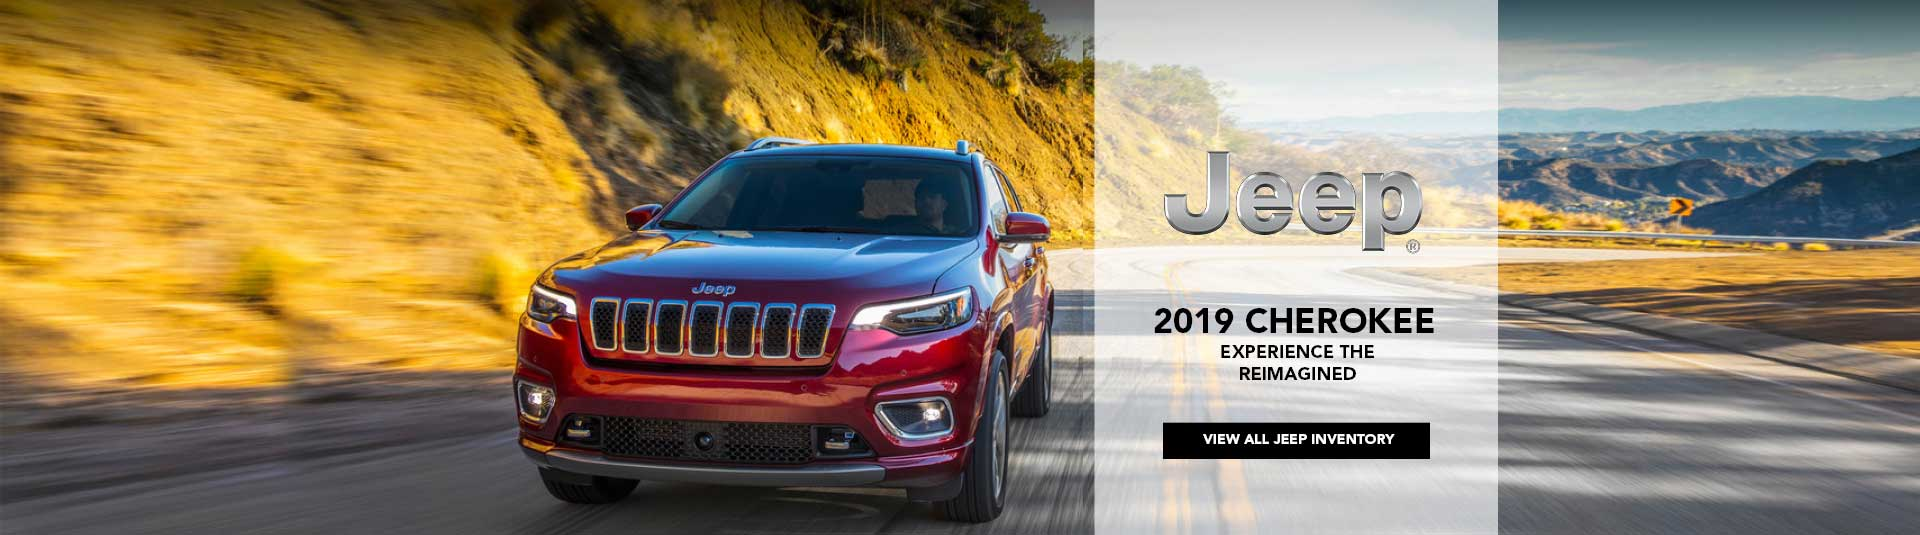 Jeep-Cherokee-Hero.jpg